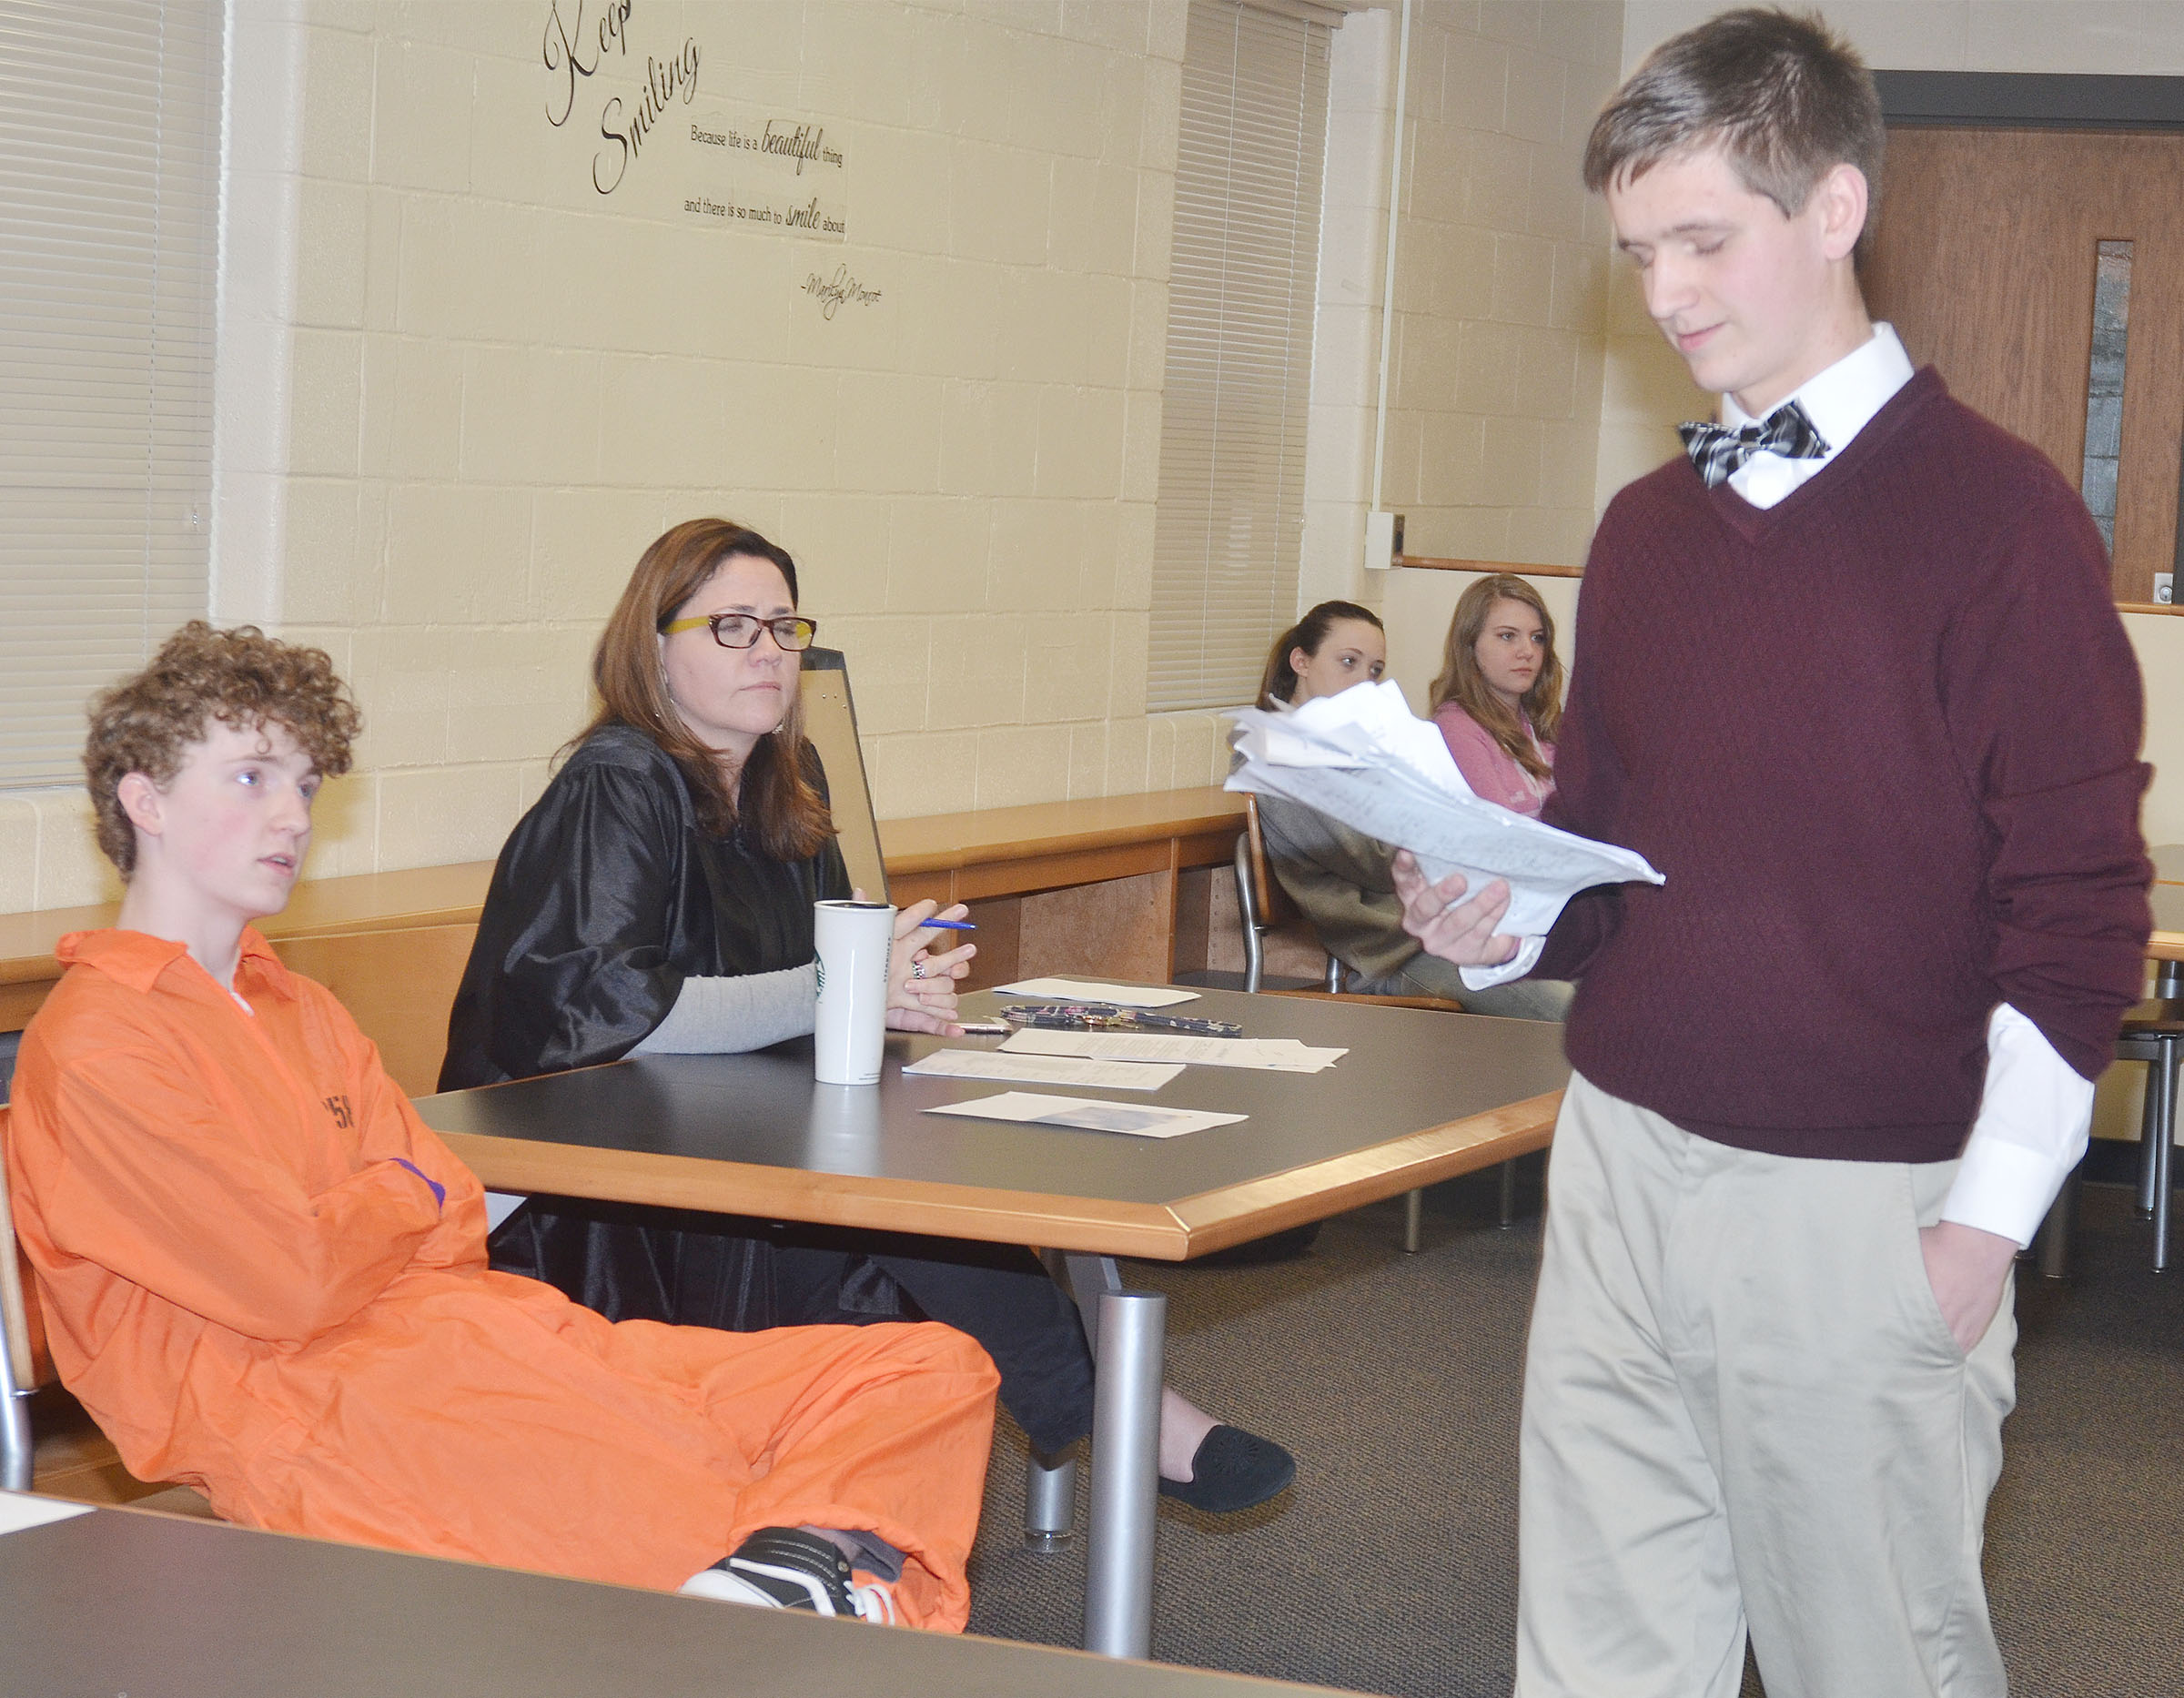 CHS sophomore Myles Murrell, portraying a prosecuting attorney, questions sophomore Jackson Hinton, who was on trial for murder, as judge Susan Dabney listens.